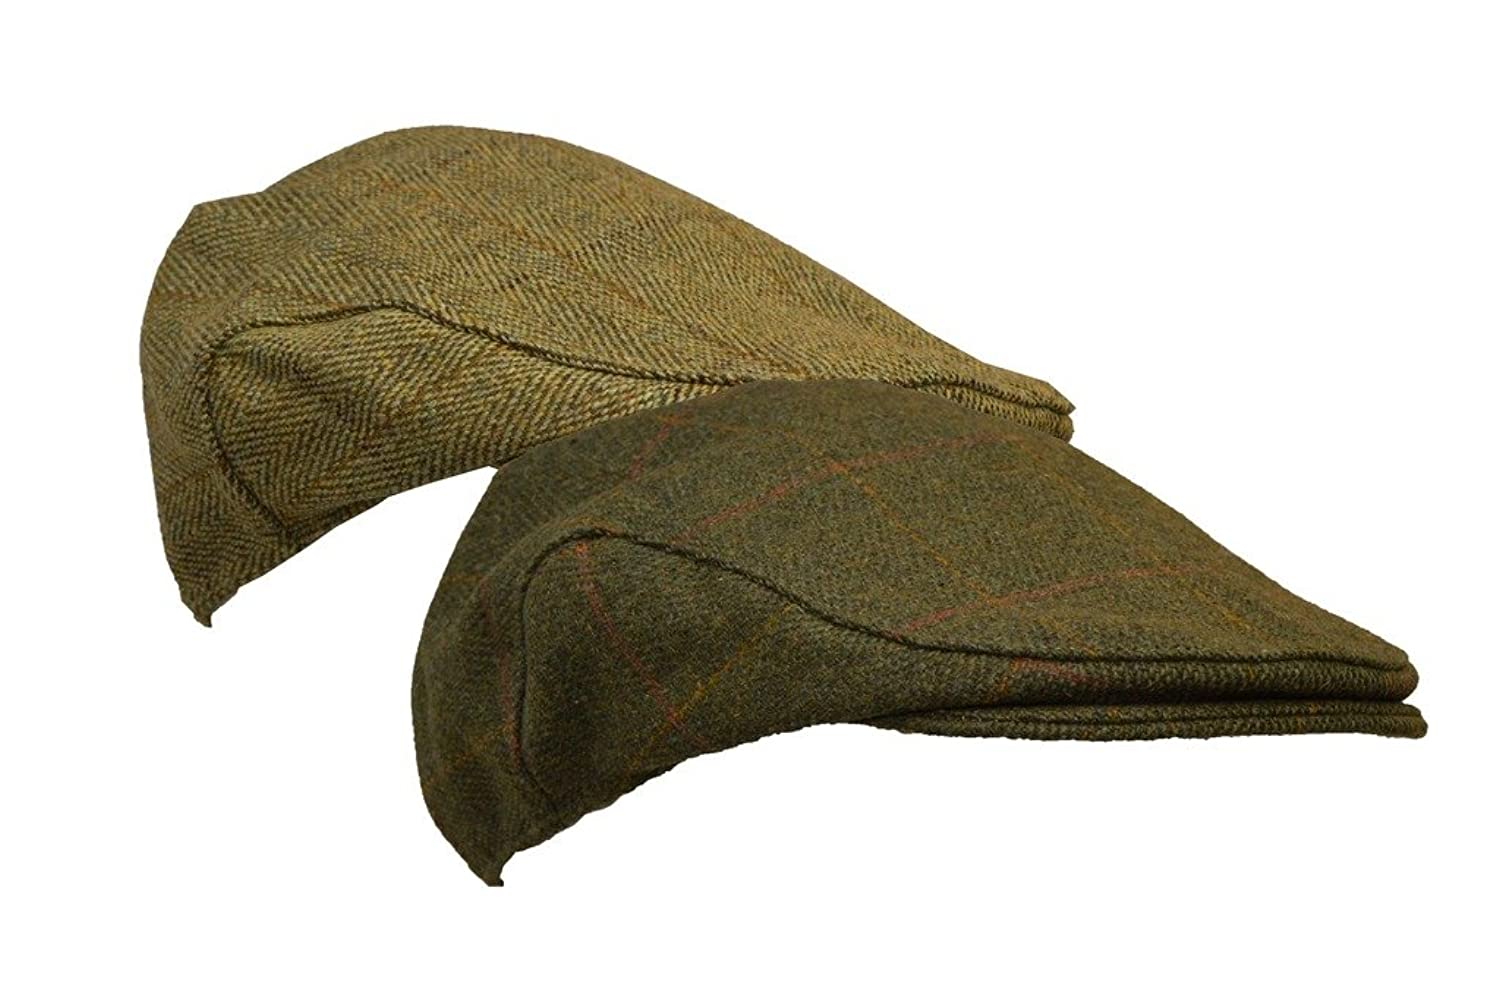 1940s Mens Hats | Fedora, Homburg, Pork Pie Hats Derby Tweed Flat Cap Hunting Shooting Countrywear Hat $22.02 AT vintagedancer.com